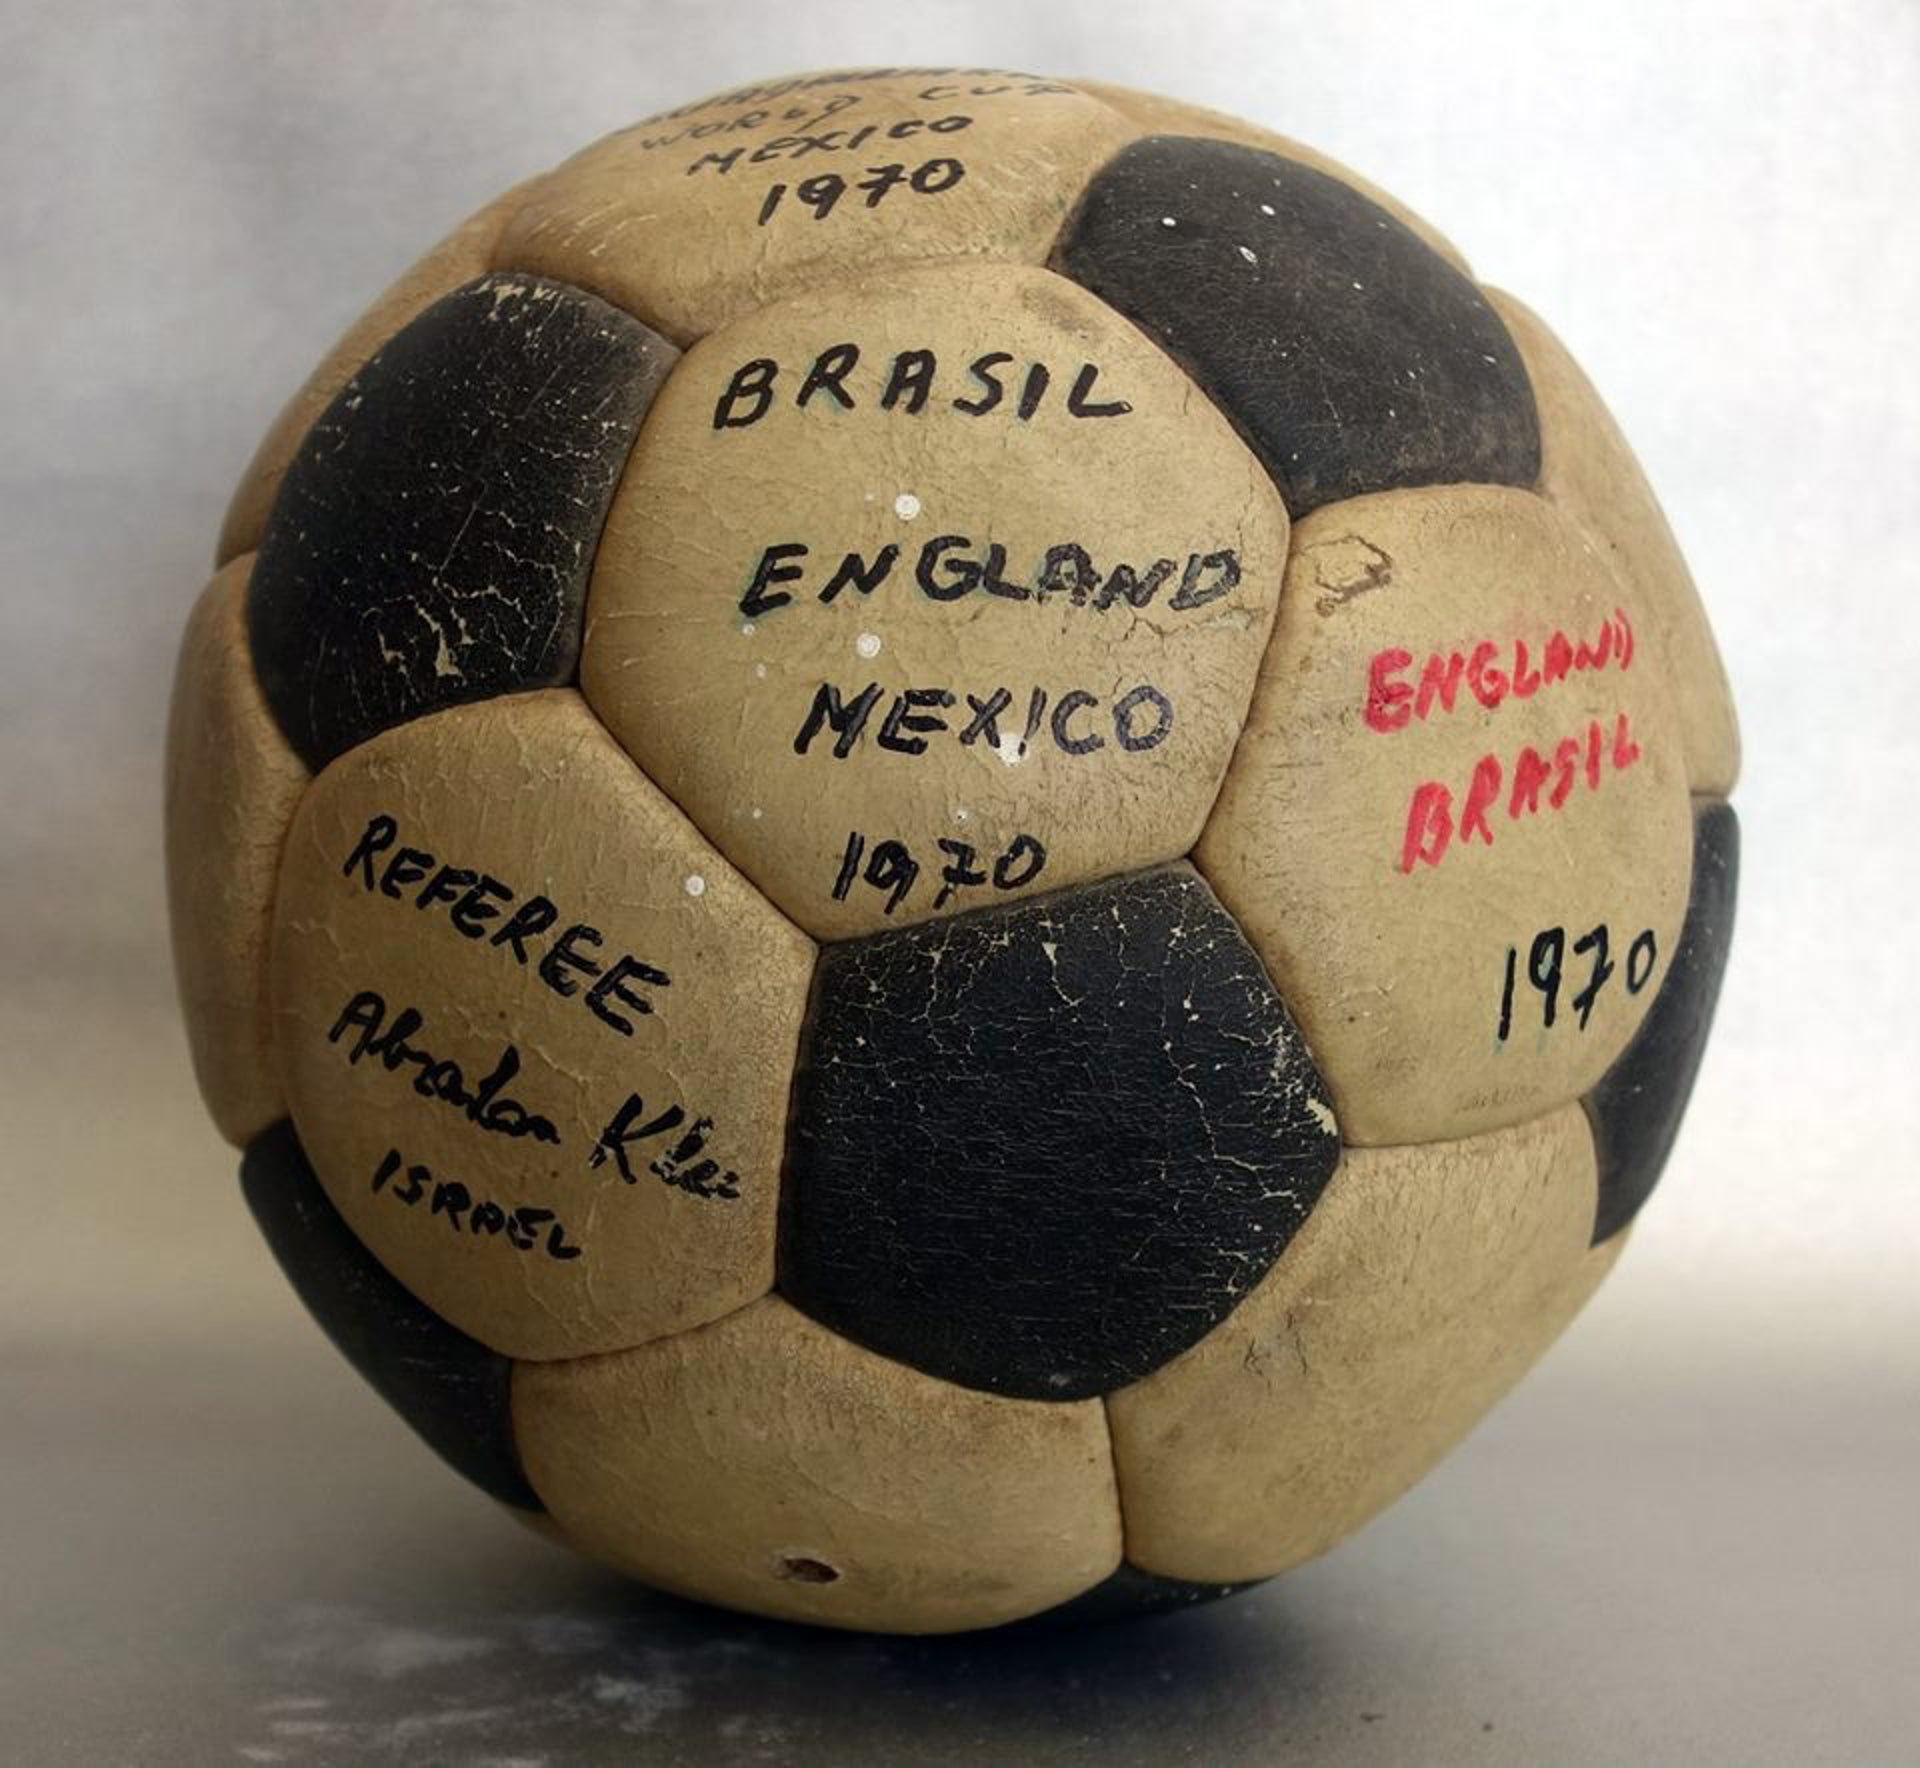 A ball from the Brazil-England game at the 1970 World Cup in Mexico, Haifa, March 2016.